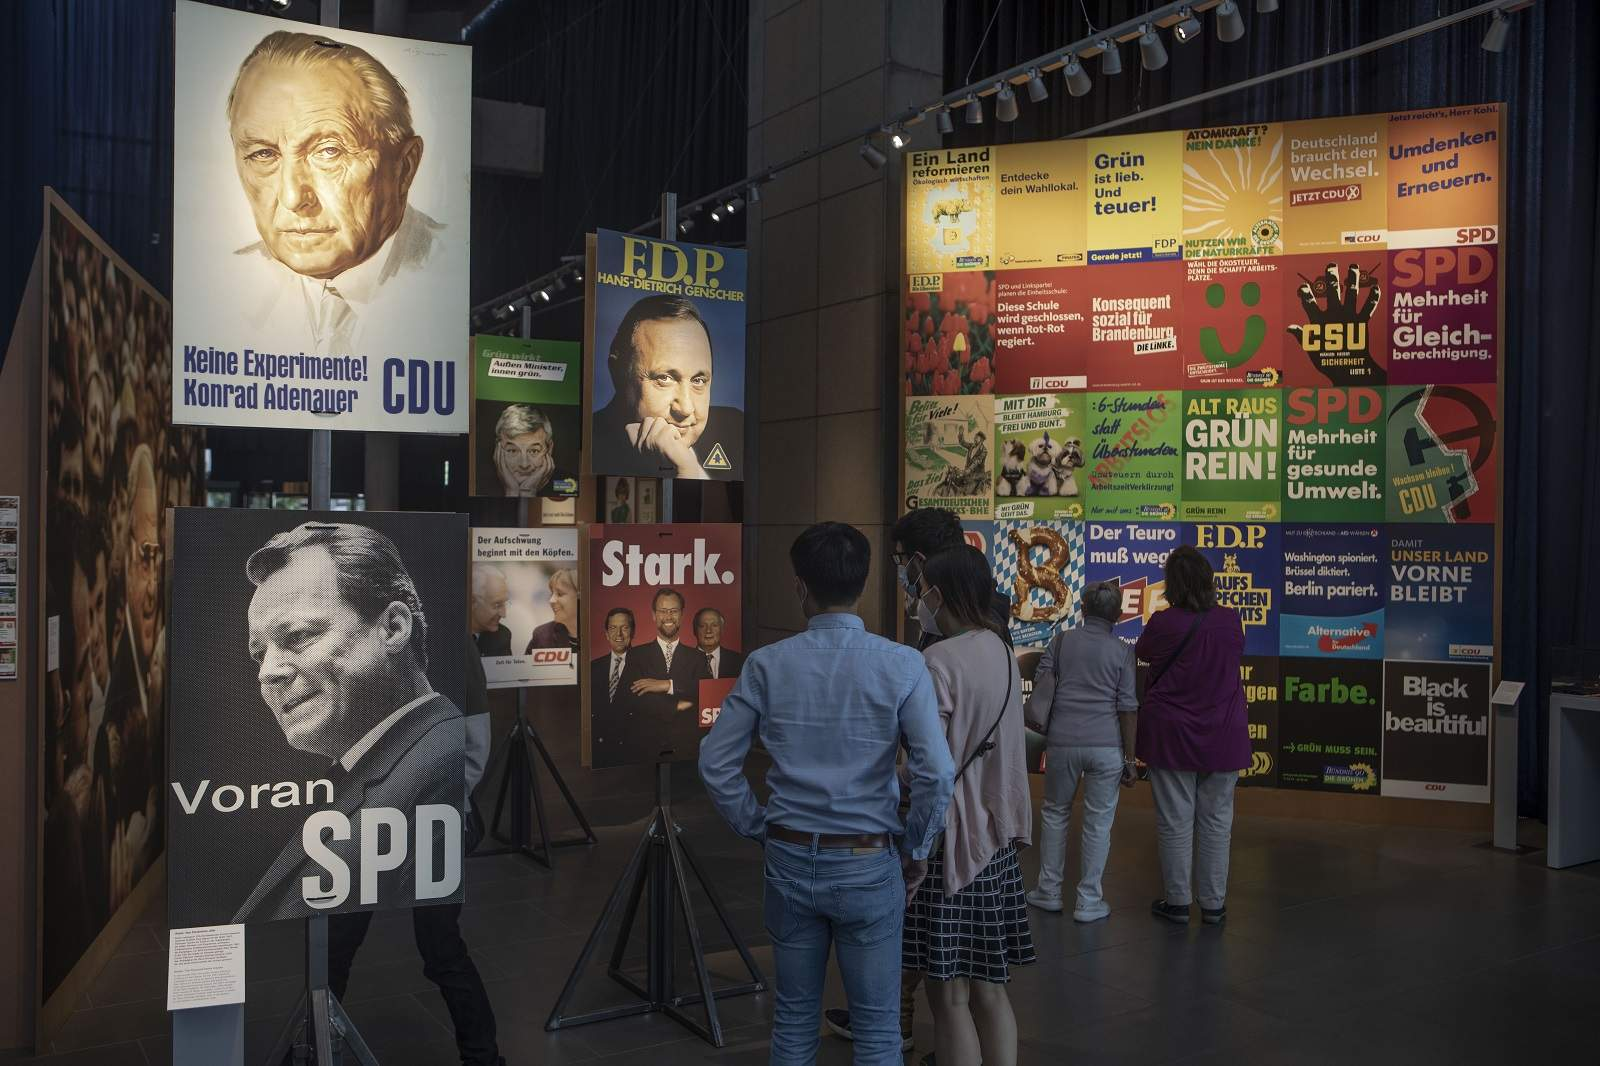 """Historic election posters at the """"Choose me!"""" exhibition in Bonn, July 2021 (Ulrich Baumgarten via Getty Image)"""